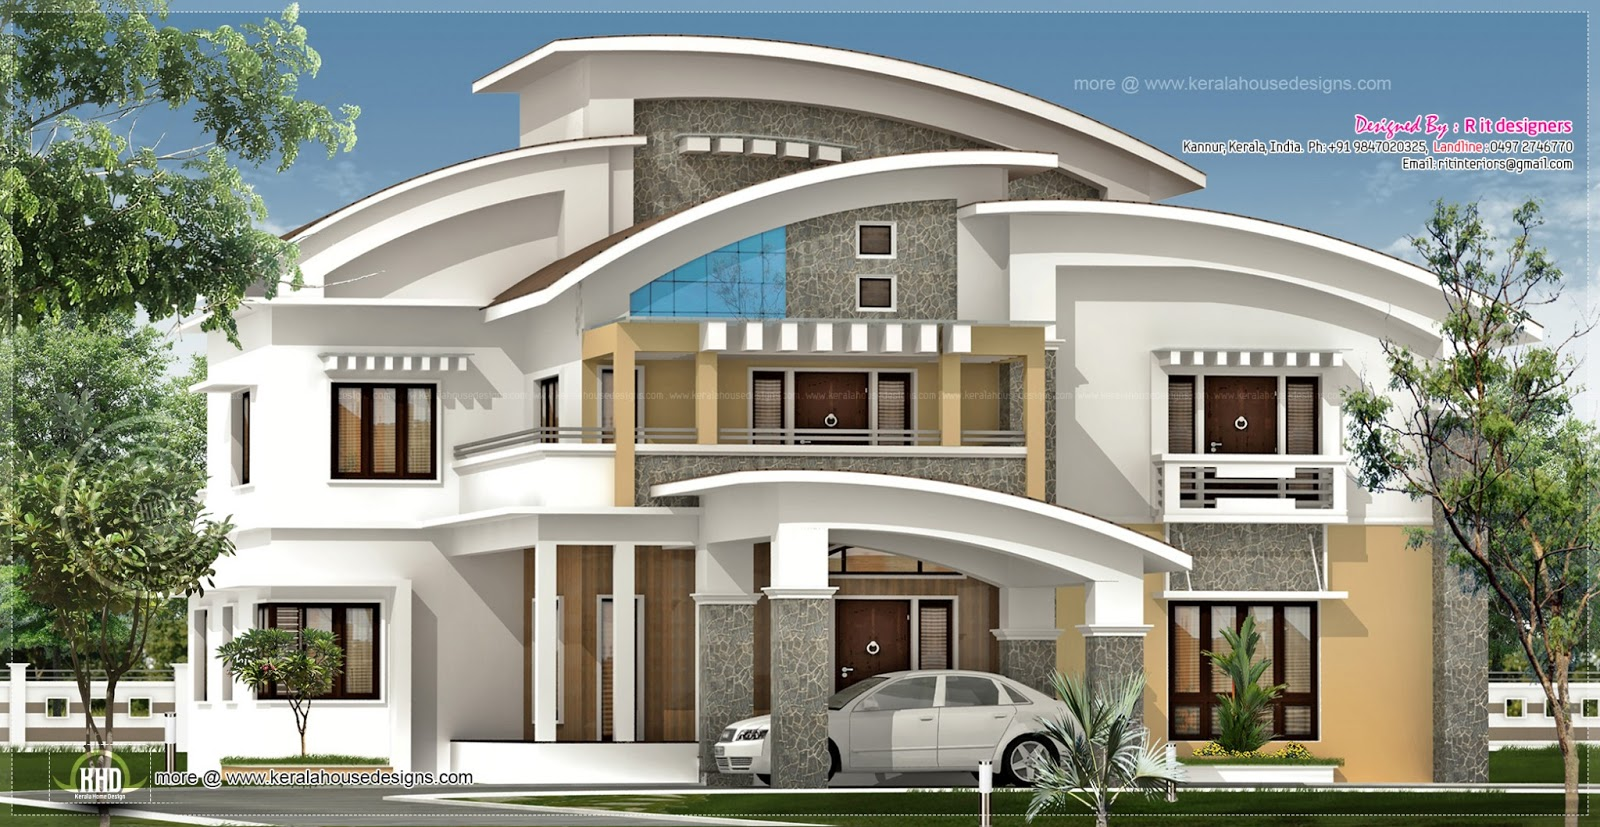 3750 square feet luxury villa exterior kerala home design and floor plans - Home design pic ...